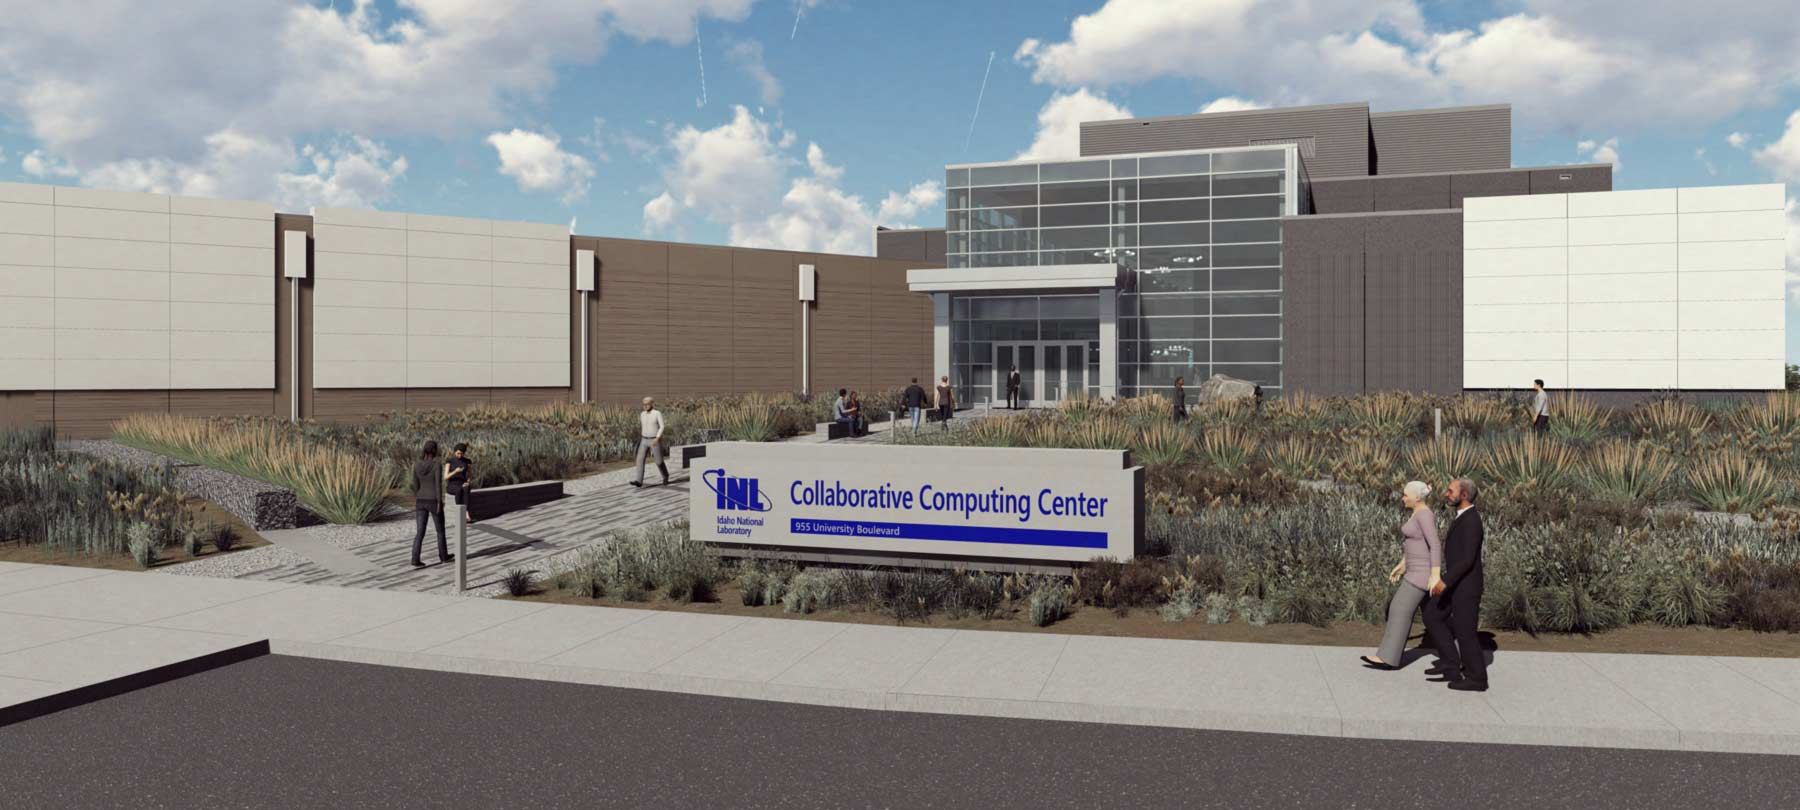 Collaborative Computing Center : Cybercore Integration Center : Idaho National Laboratories Groundbreakings